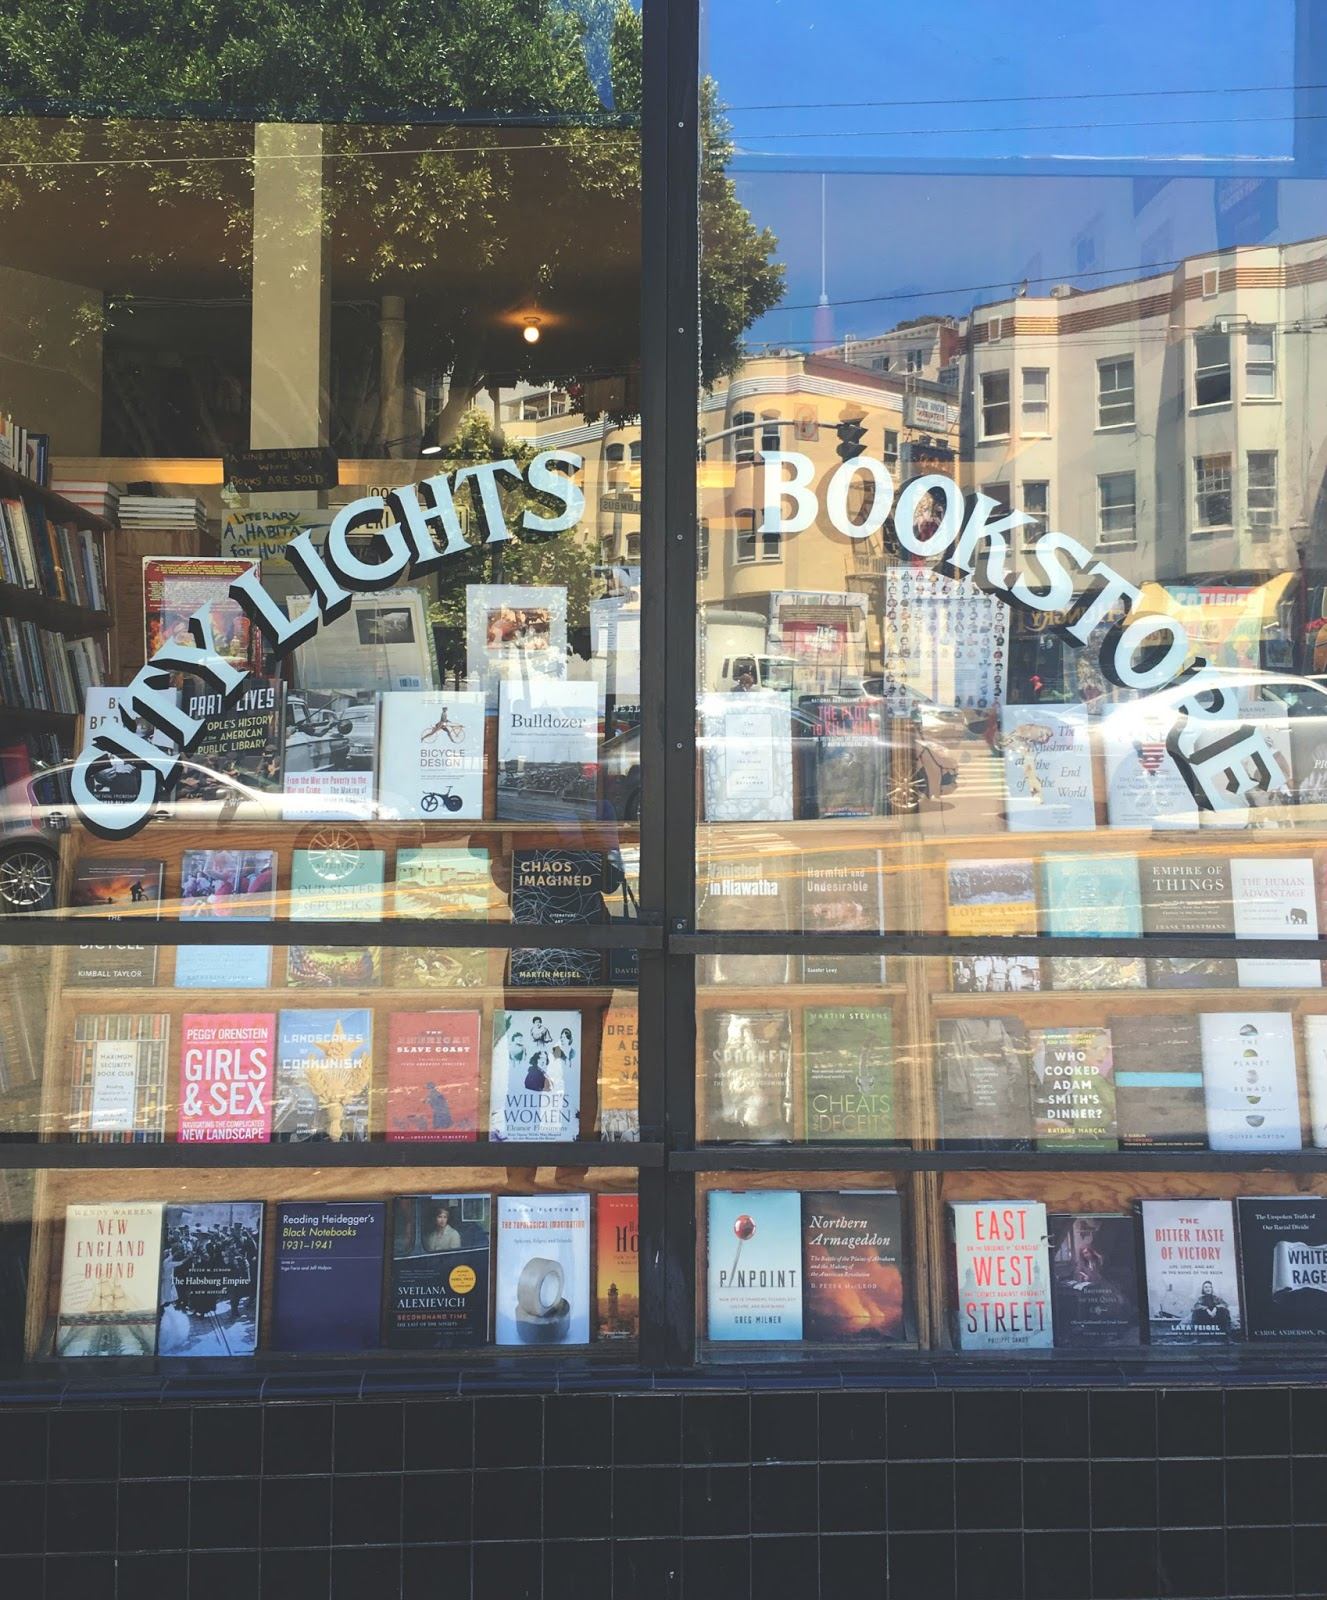 City Lights Book Store in San Francisco, California